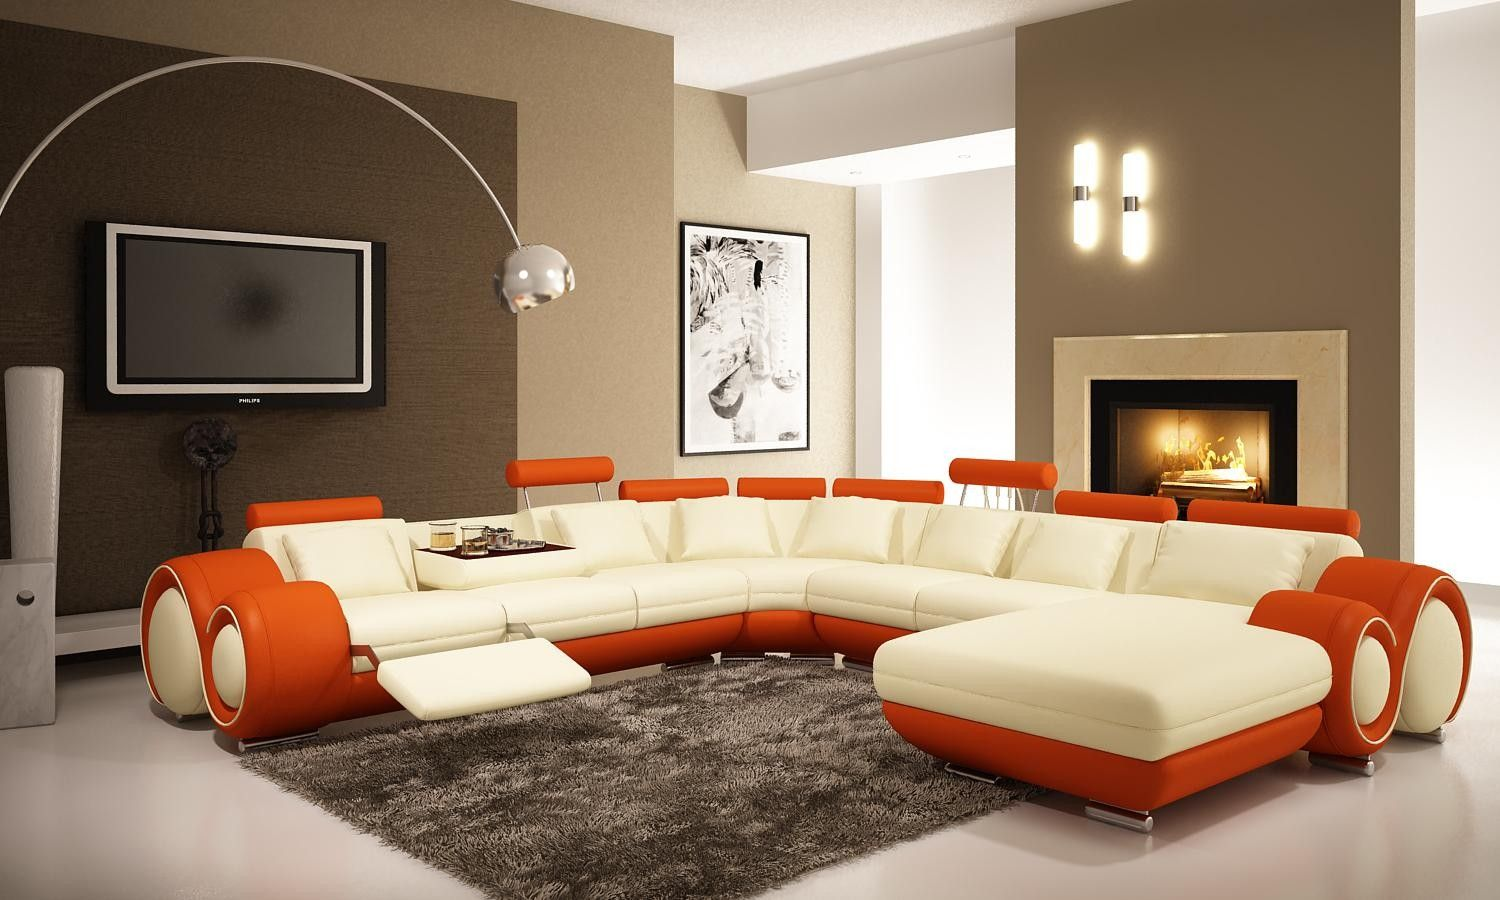 Modern Living Rooms and Technology for It Grey Rugs Modern Sofa. Traditional Style Living Room Furniture. Image Result for Living Room Furniture Furniture. Red Velvet Couch Living Room Google Search Living Room Ideas